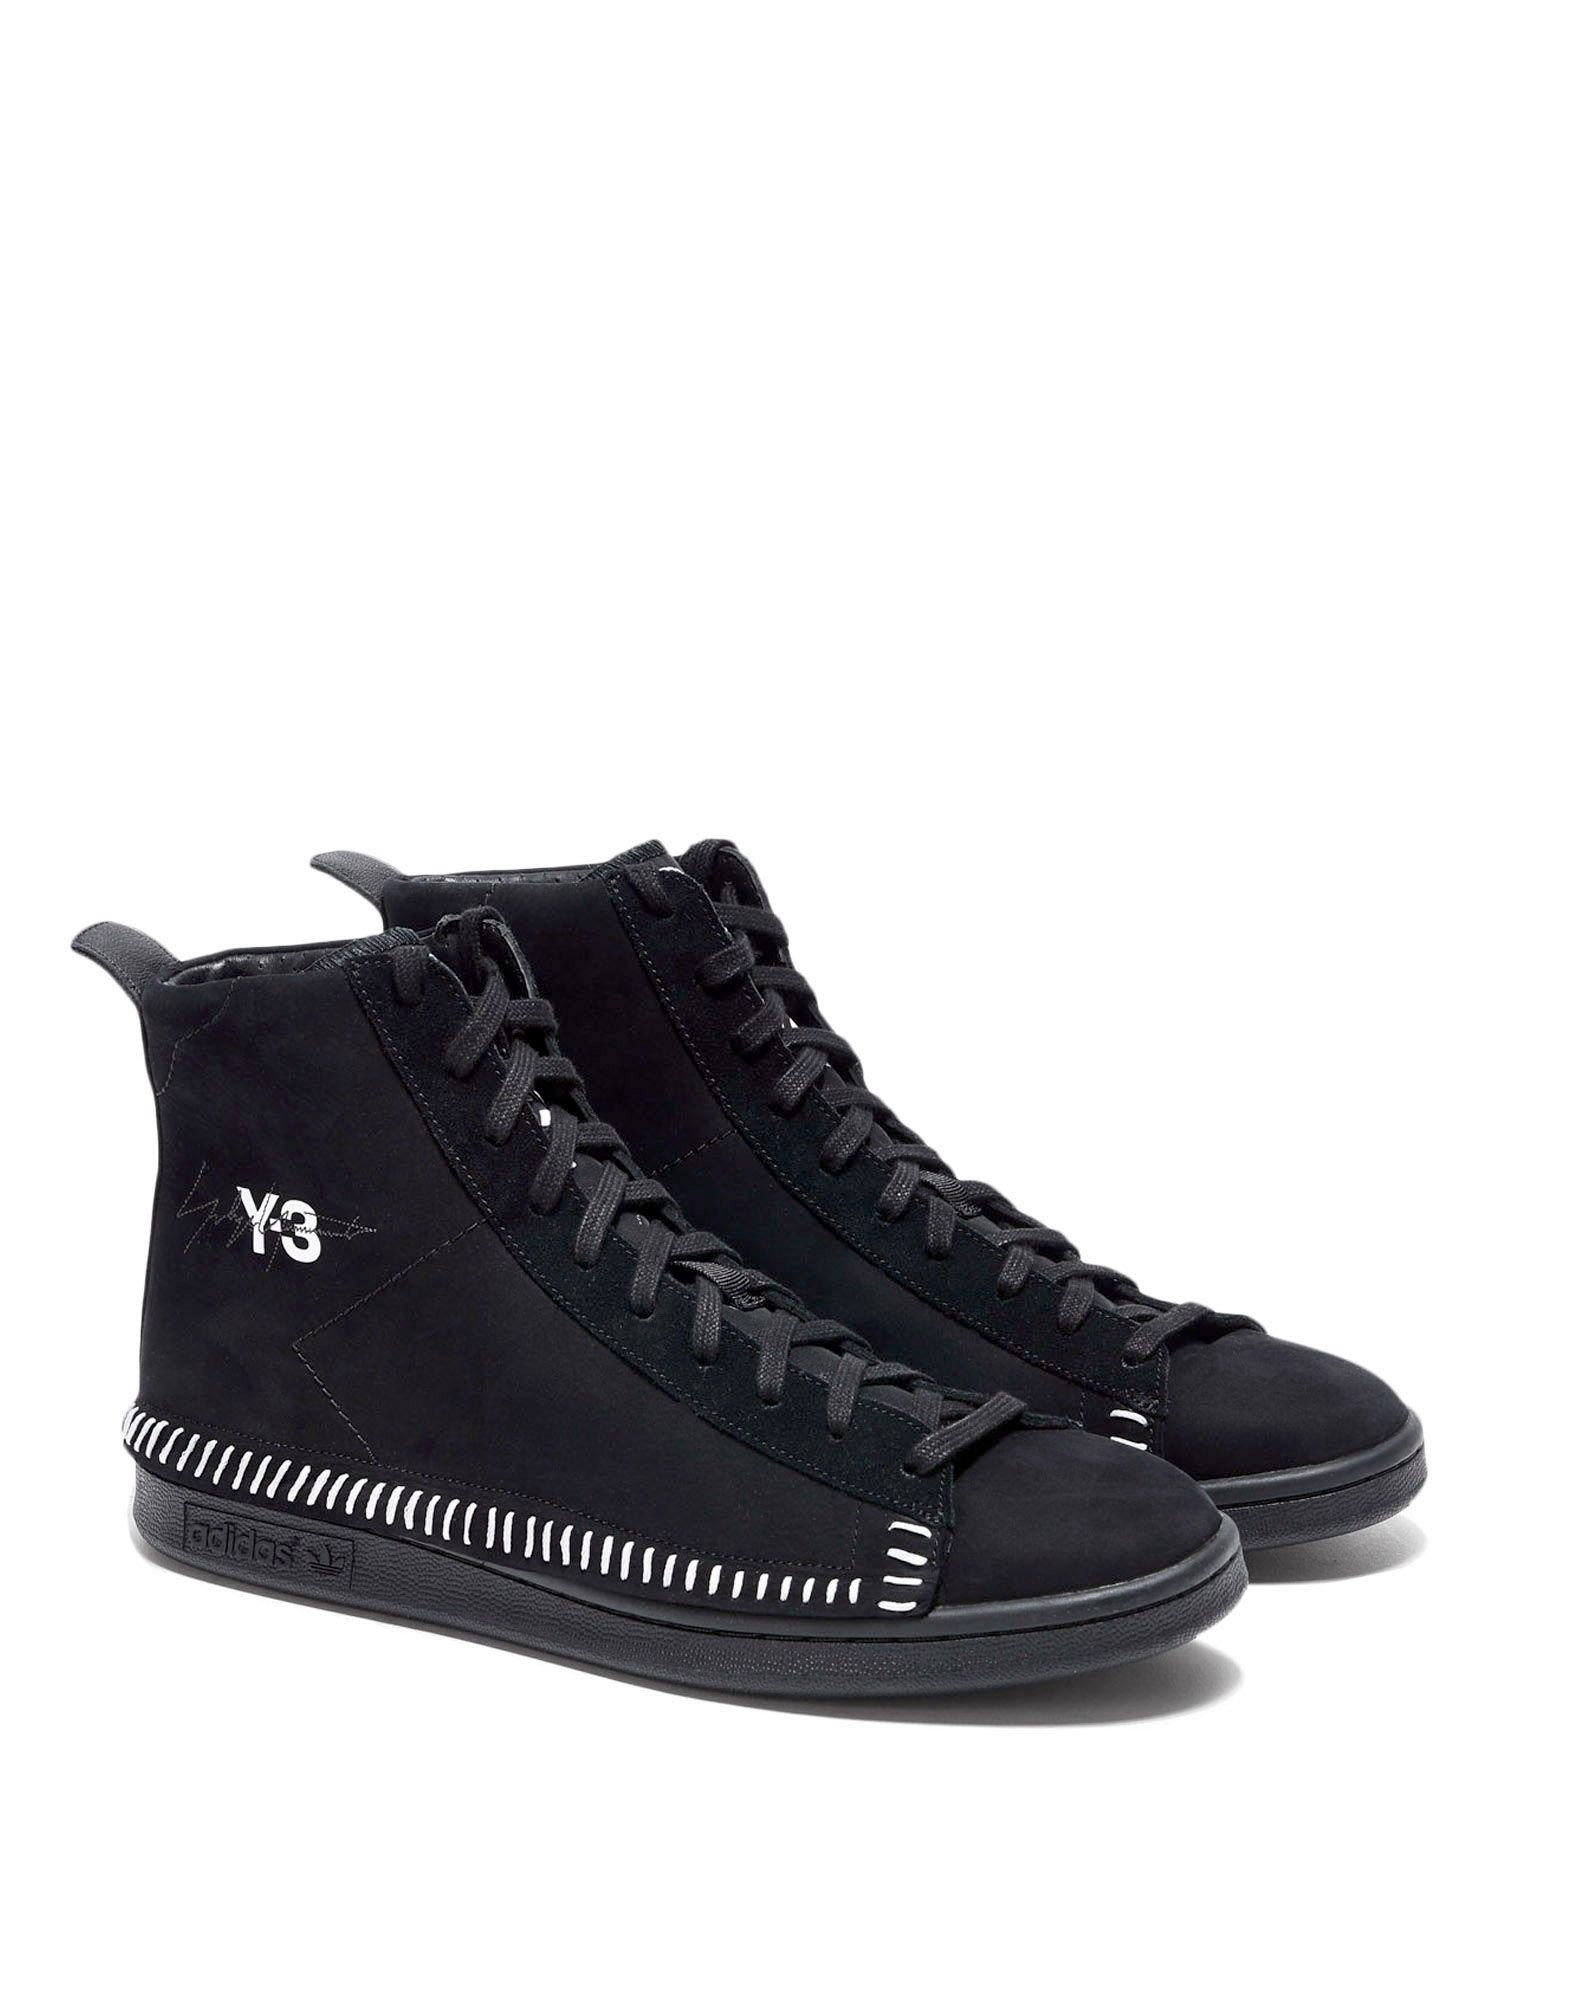 Y-3 Y-3 Bynder High High-top sneakers E r